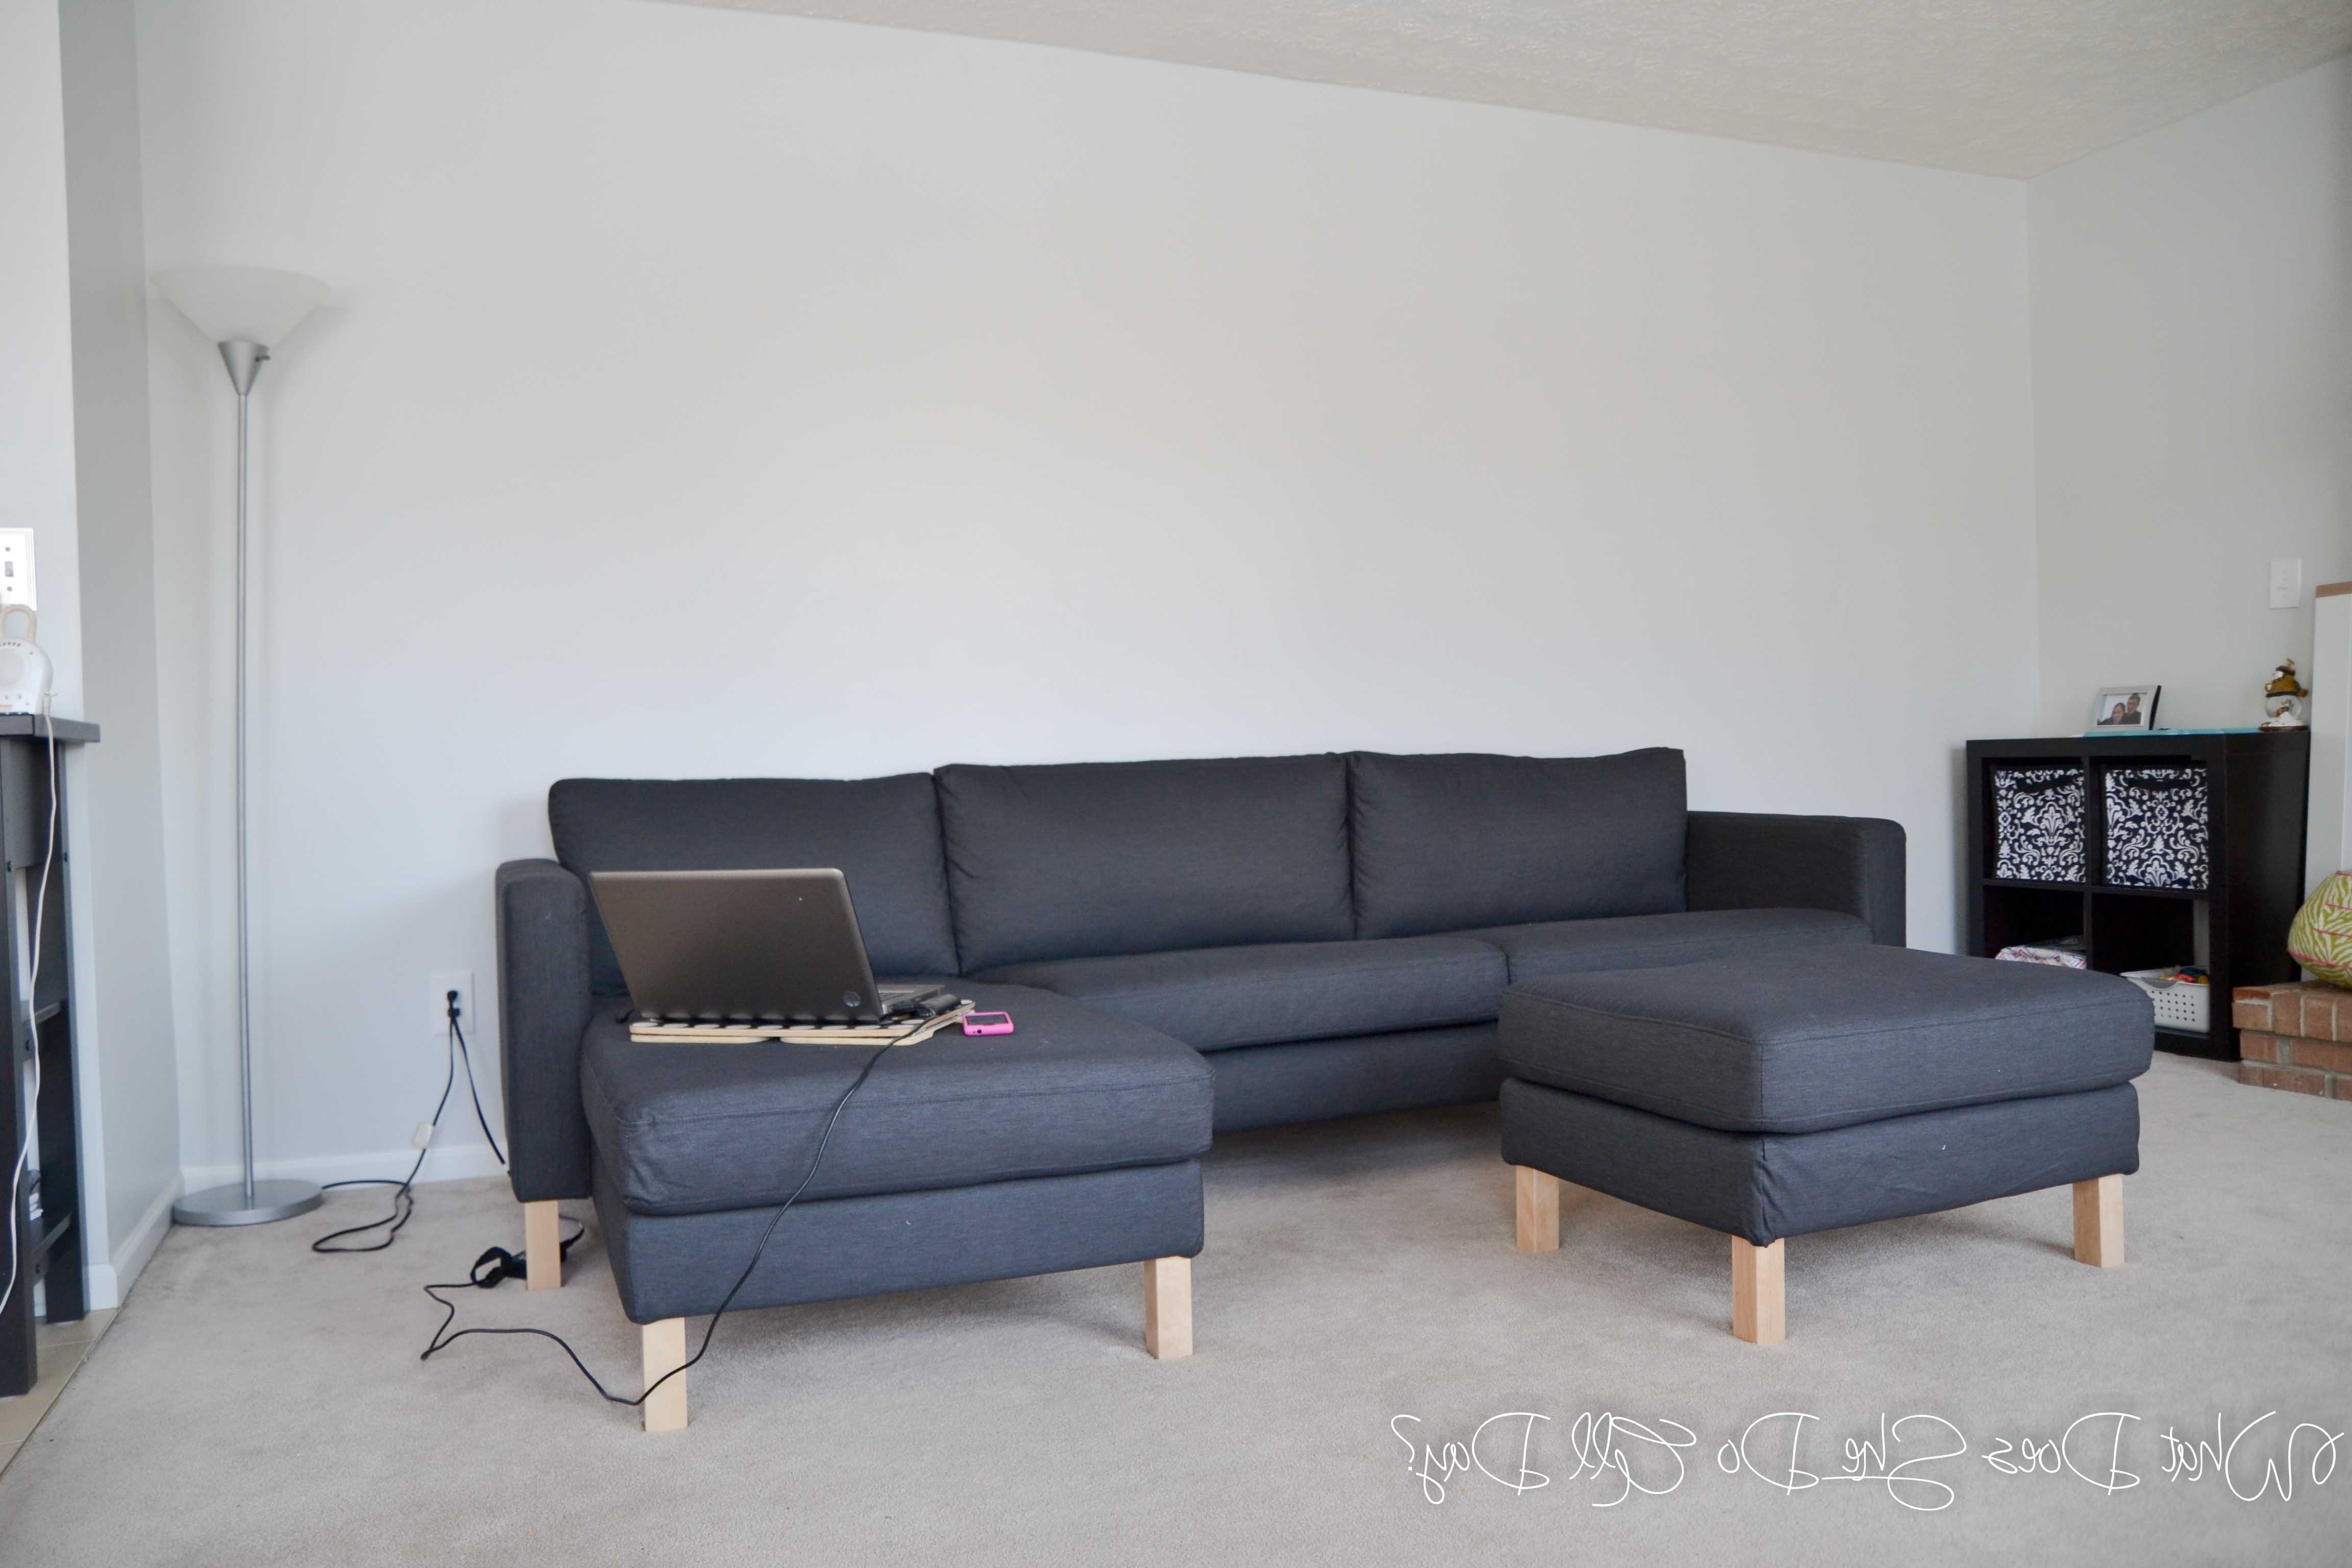 2018 Karlstad Chaise Covers Within Furniture: Ikea Karlstad Sofa Ikea Kivik Chair Discontinued (View 6 of 15)